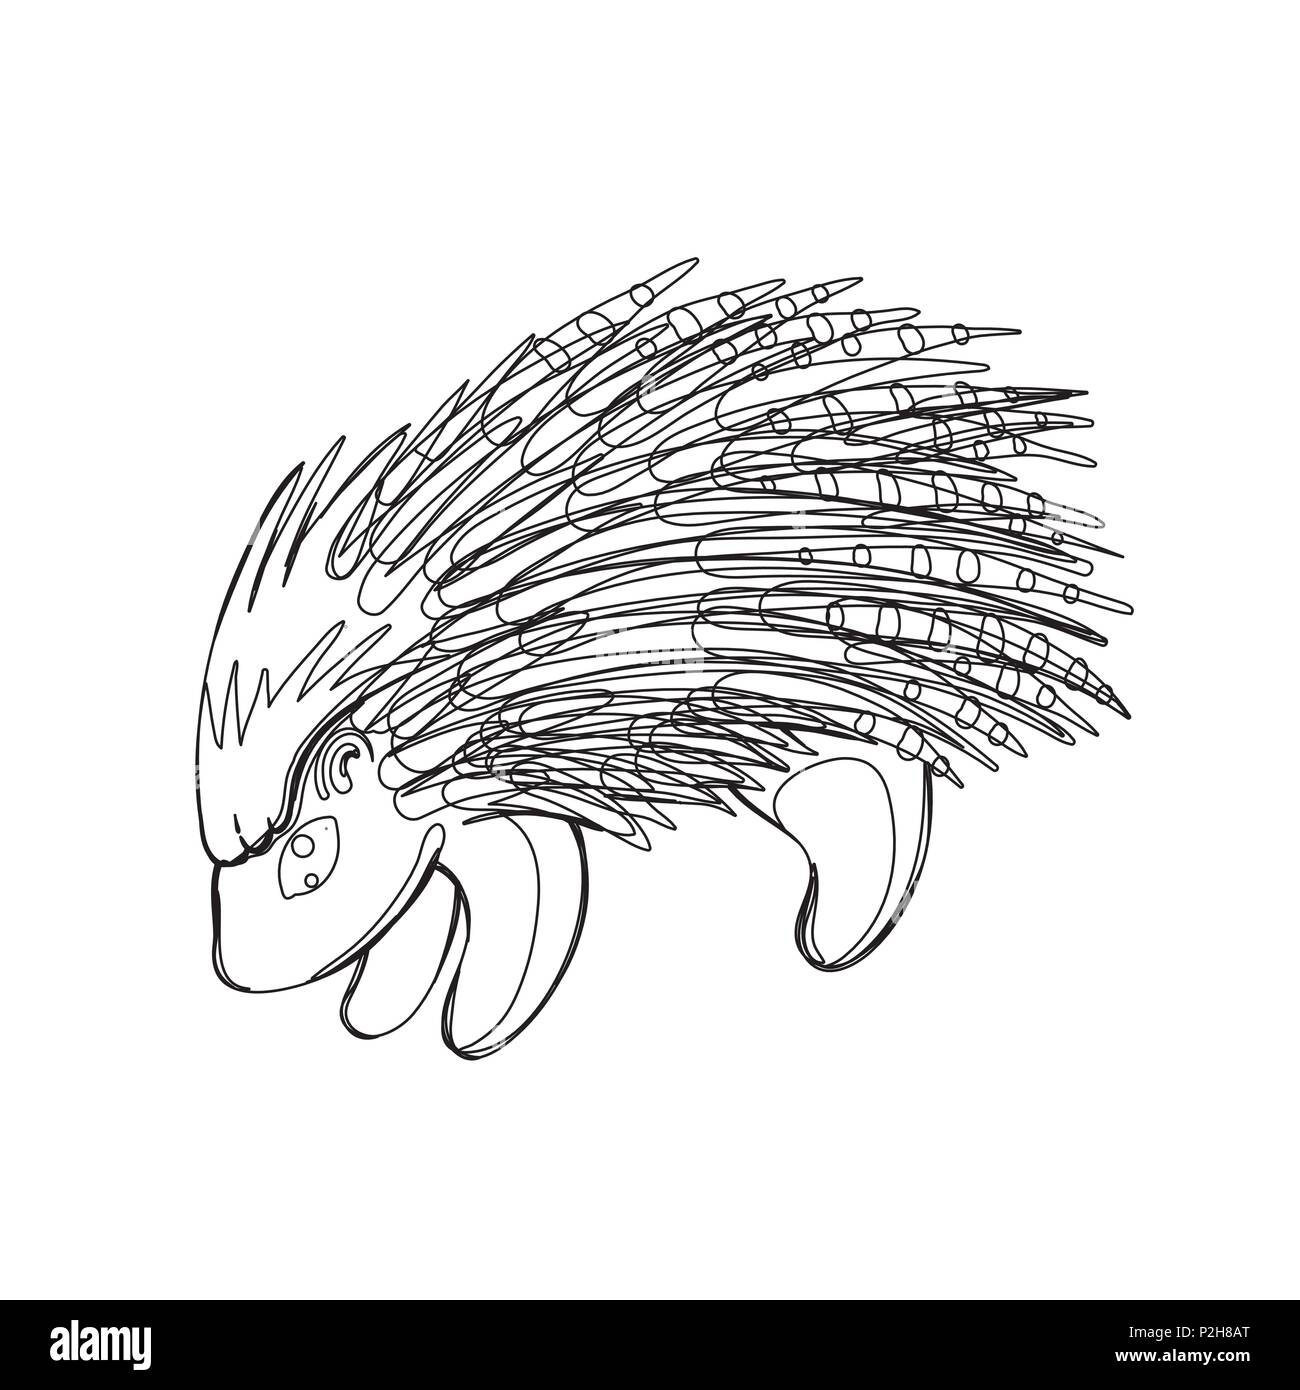 Vector illustration of porcupine in continious line graphic style, black countour outline sketch isolated on white - Stock Vector